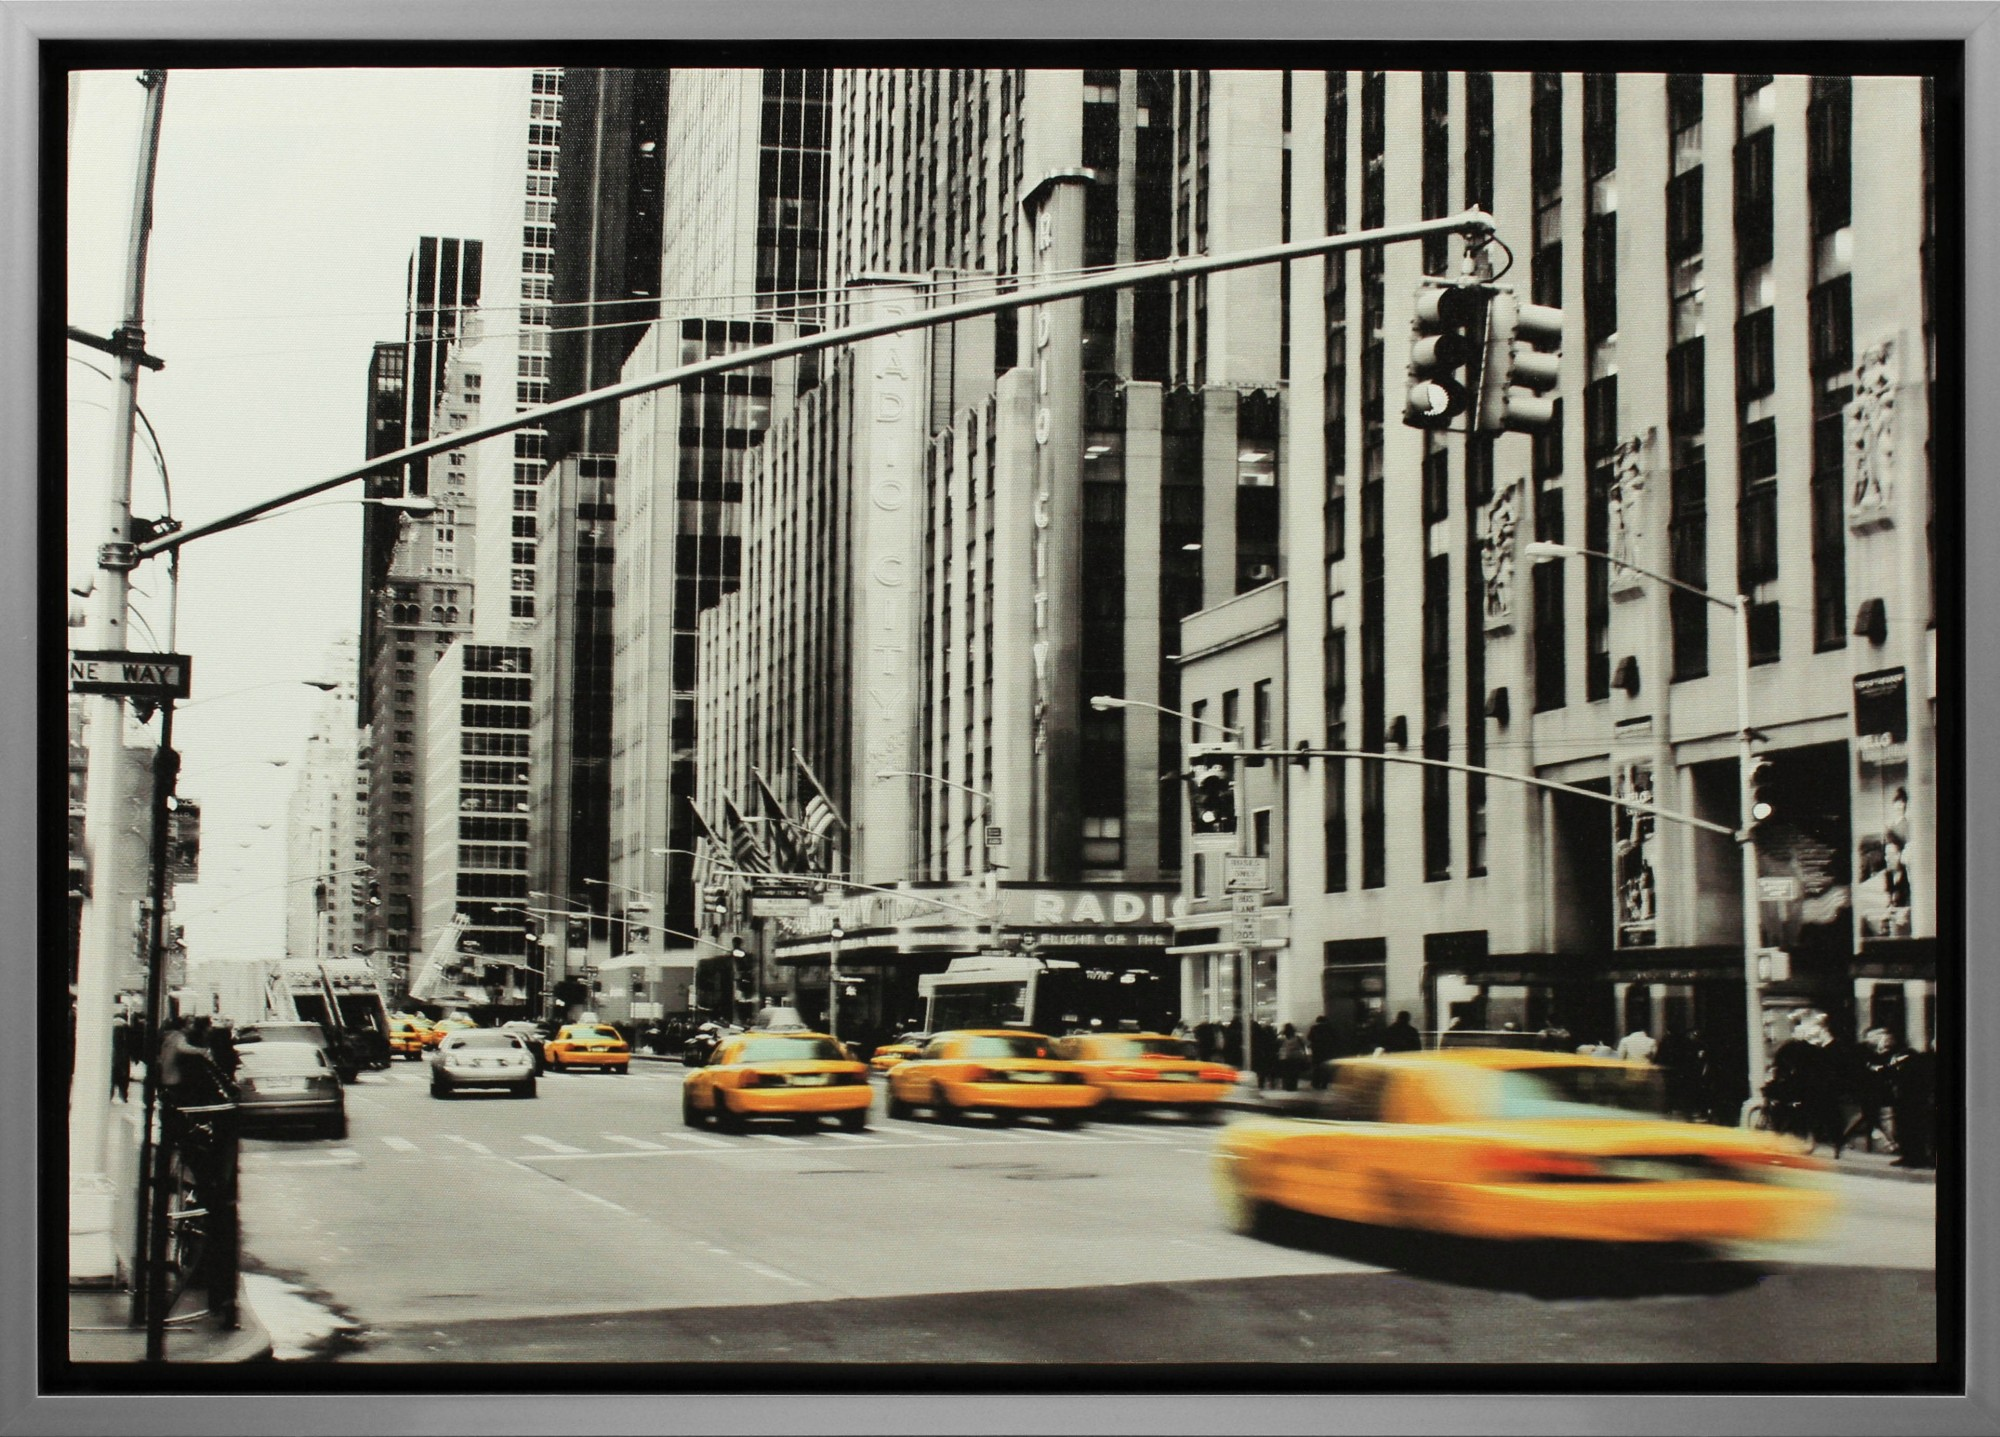 leinwand bild keilrahmen wandbild gerahmt grau 50x70 cm new york radio city hall ebay. Black Bedroom Furniture Sets. Home Design Ideas